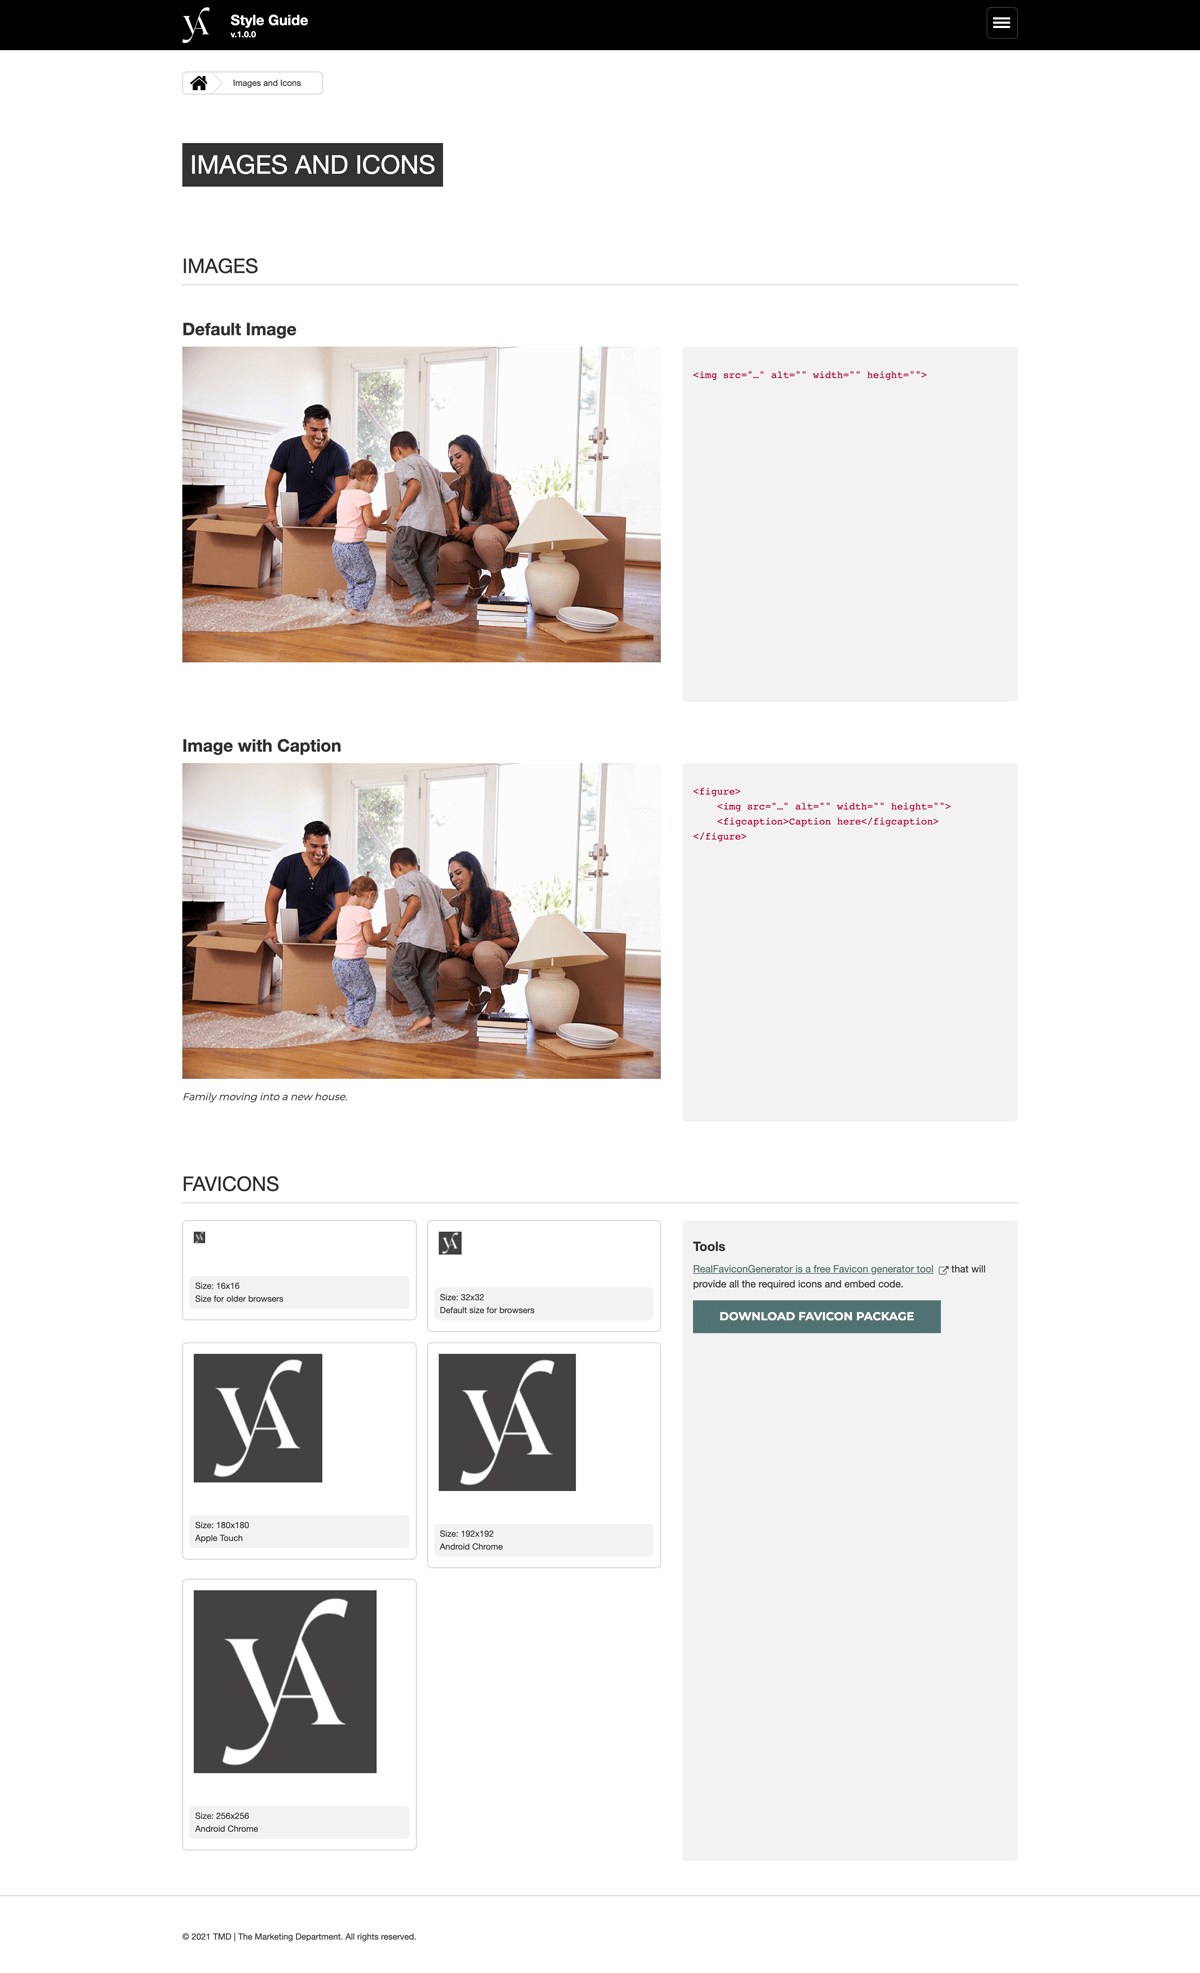 Style guide images and icons page